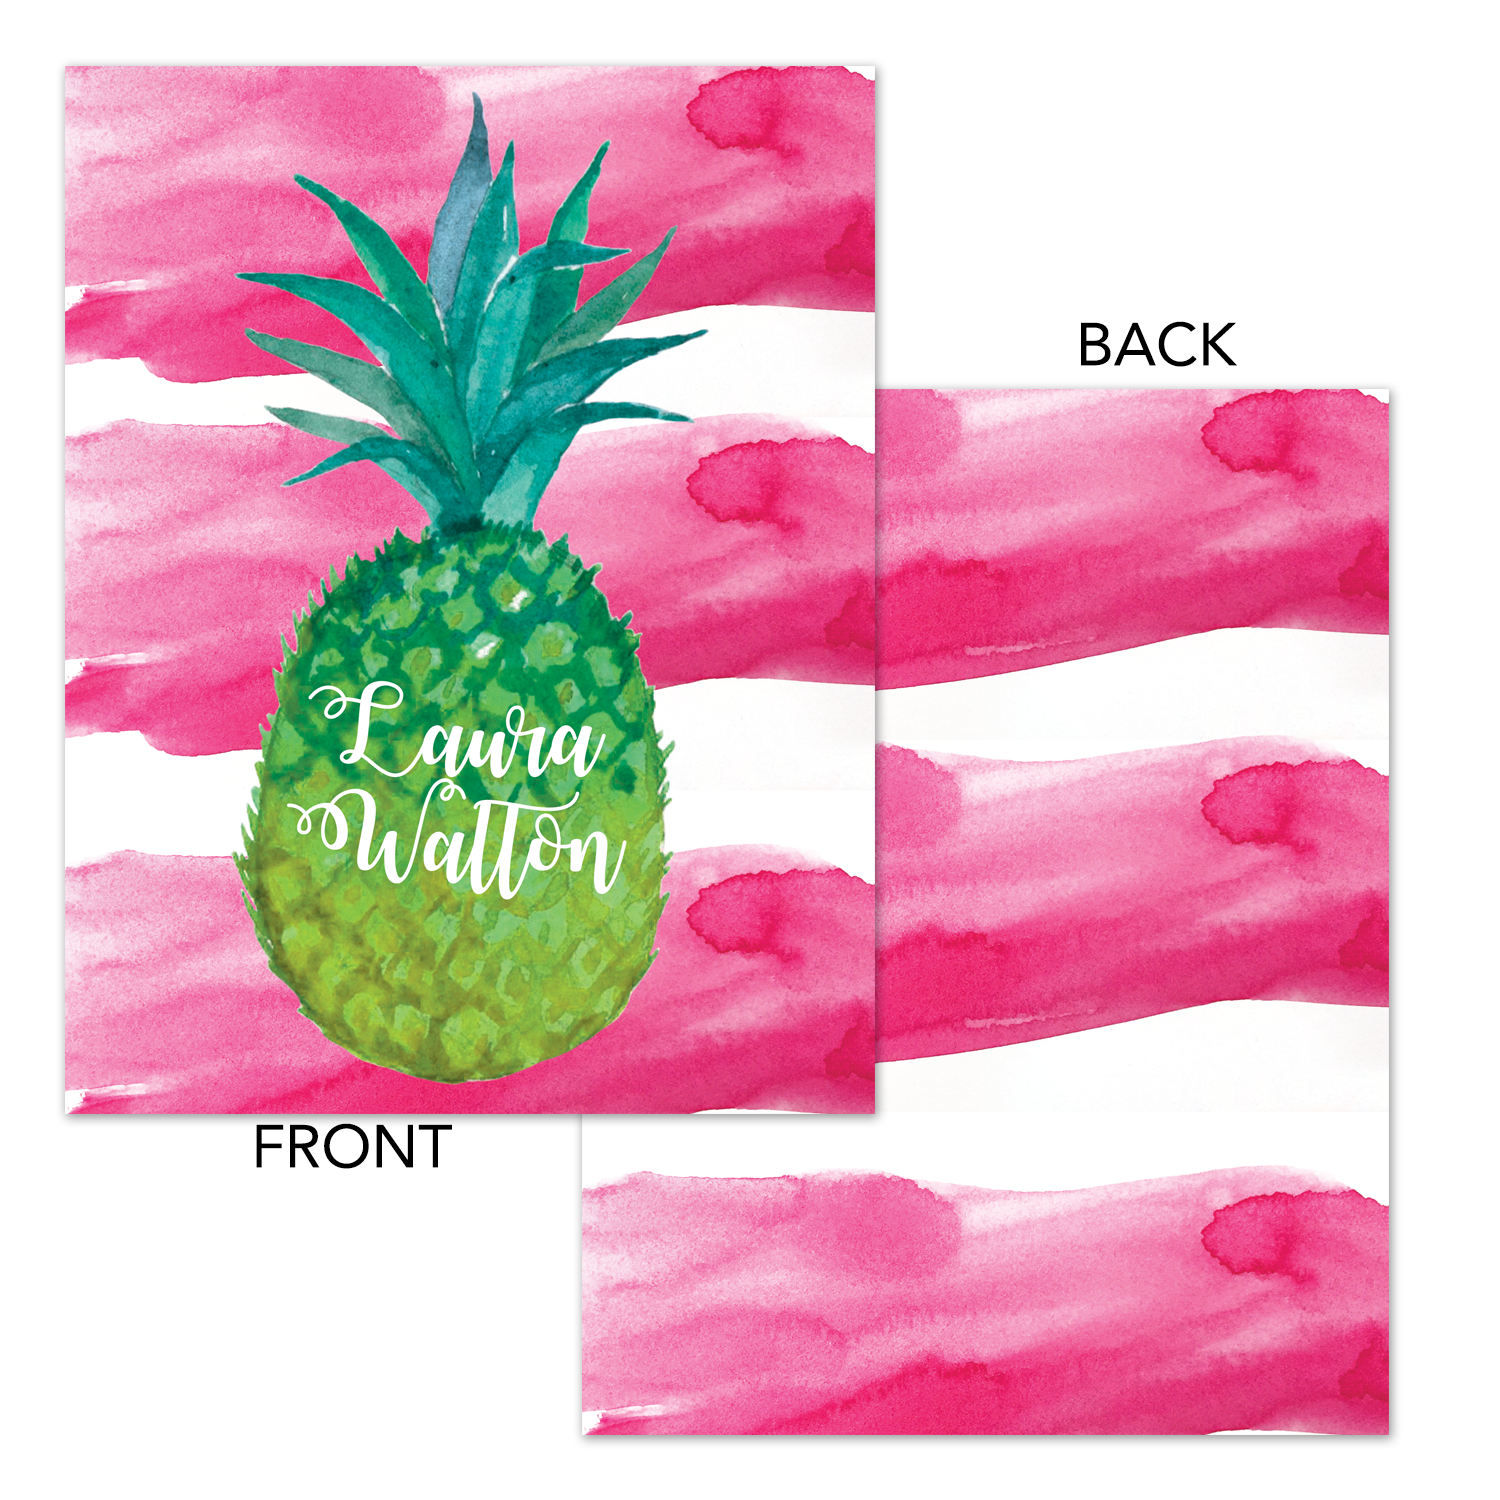 photo relating to Pineapple Printable referred to as Watercolor Pineapple Printable Binder Deal with - Planner Deal with